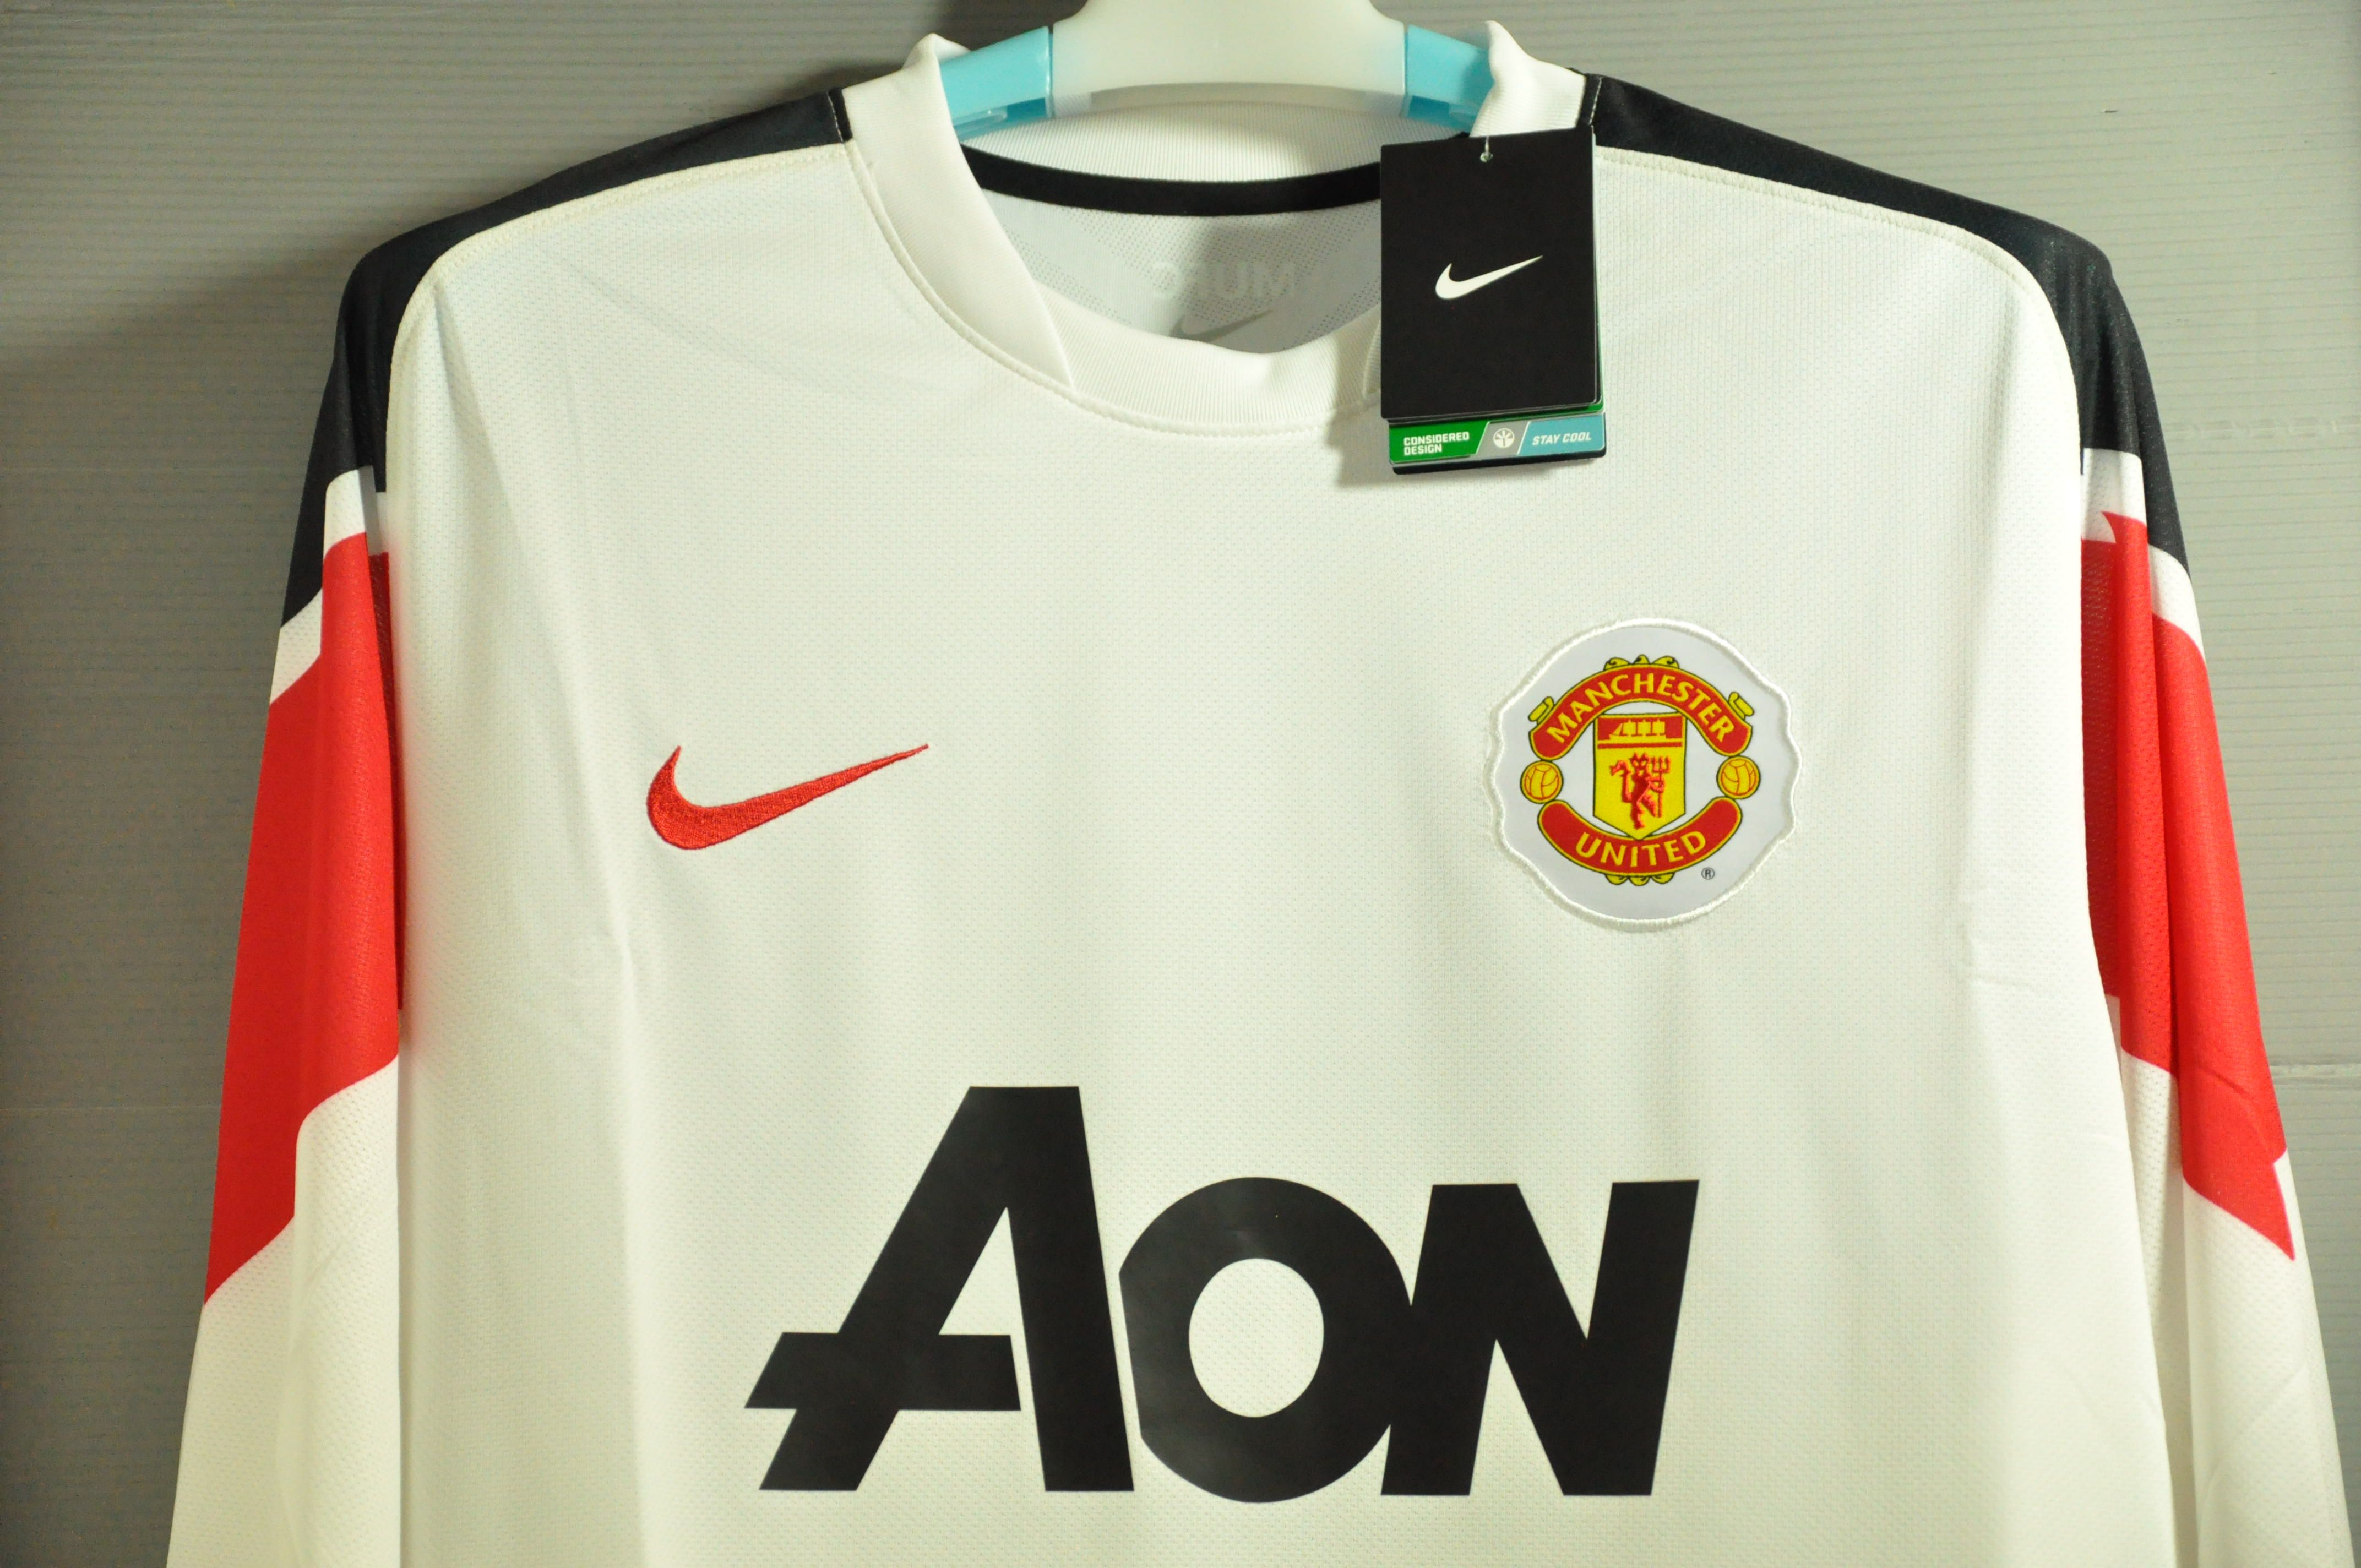 Manchester united nike away jersey long sleeves 2010